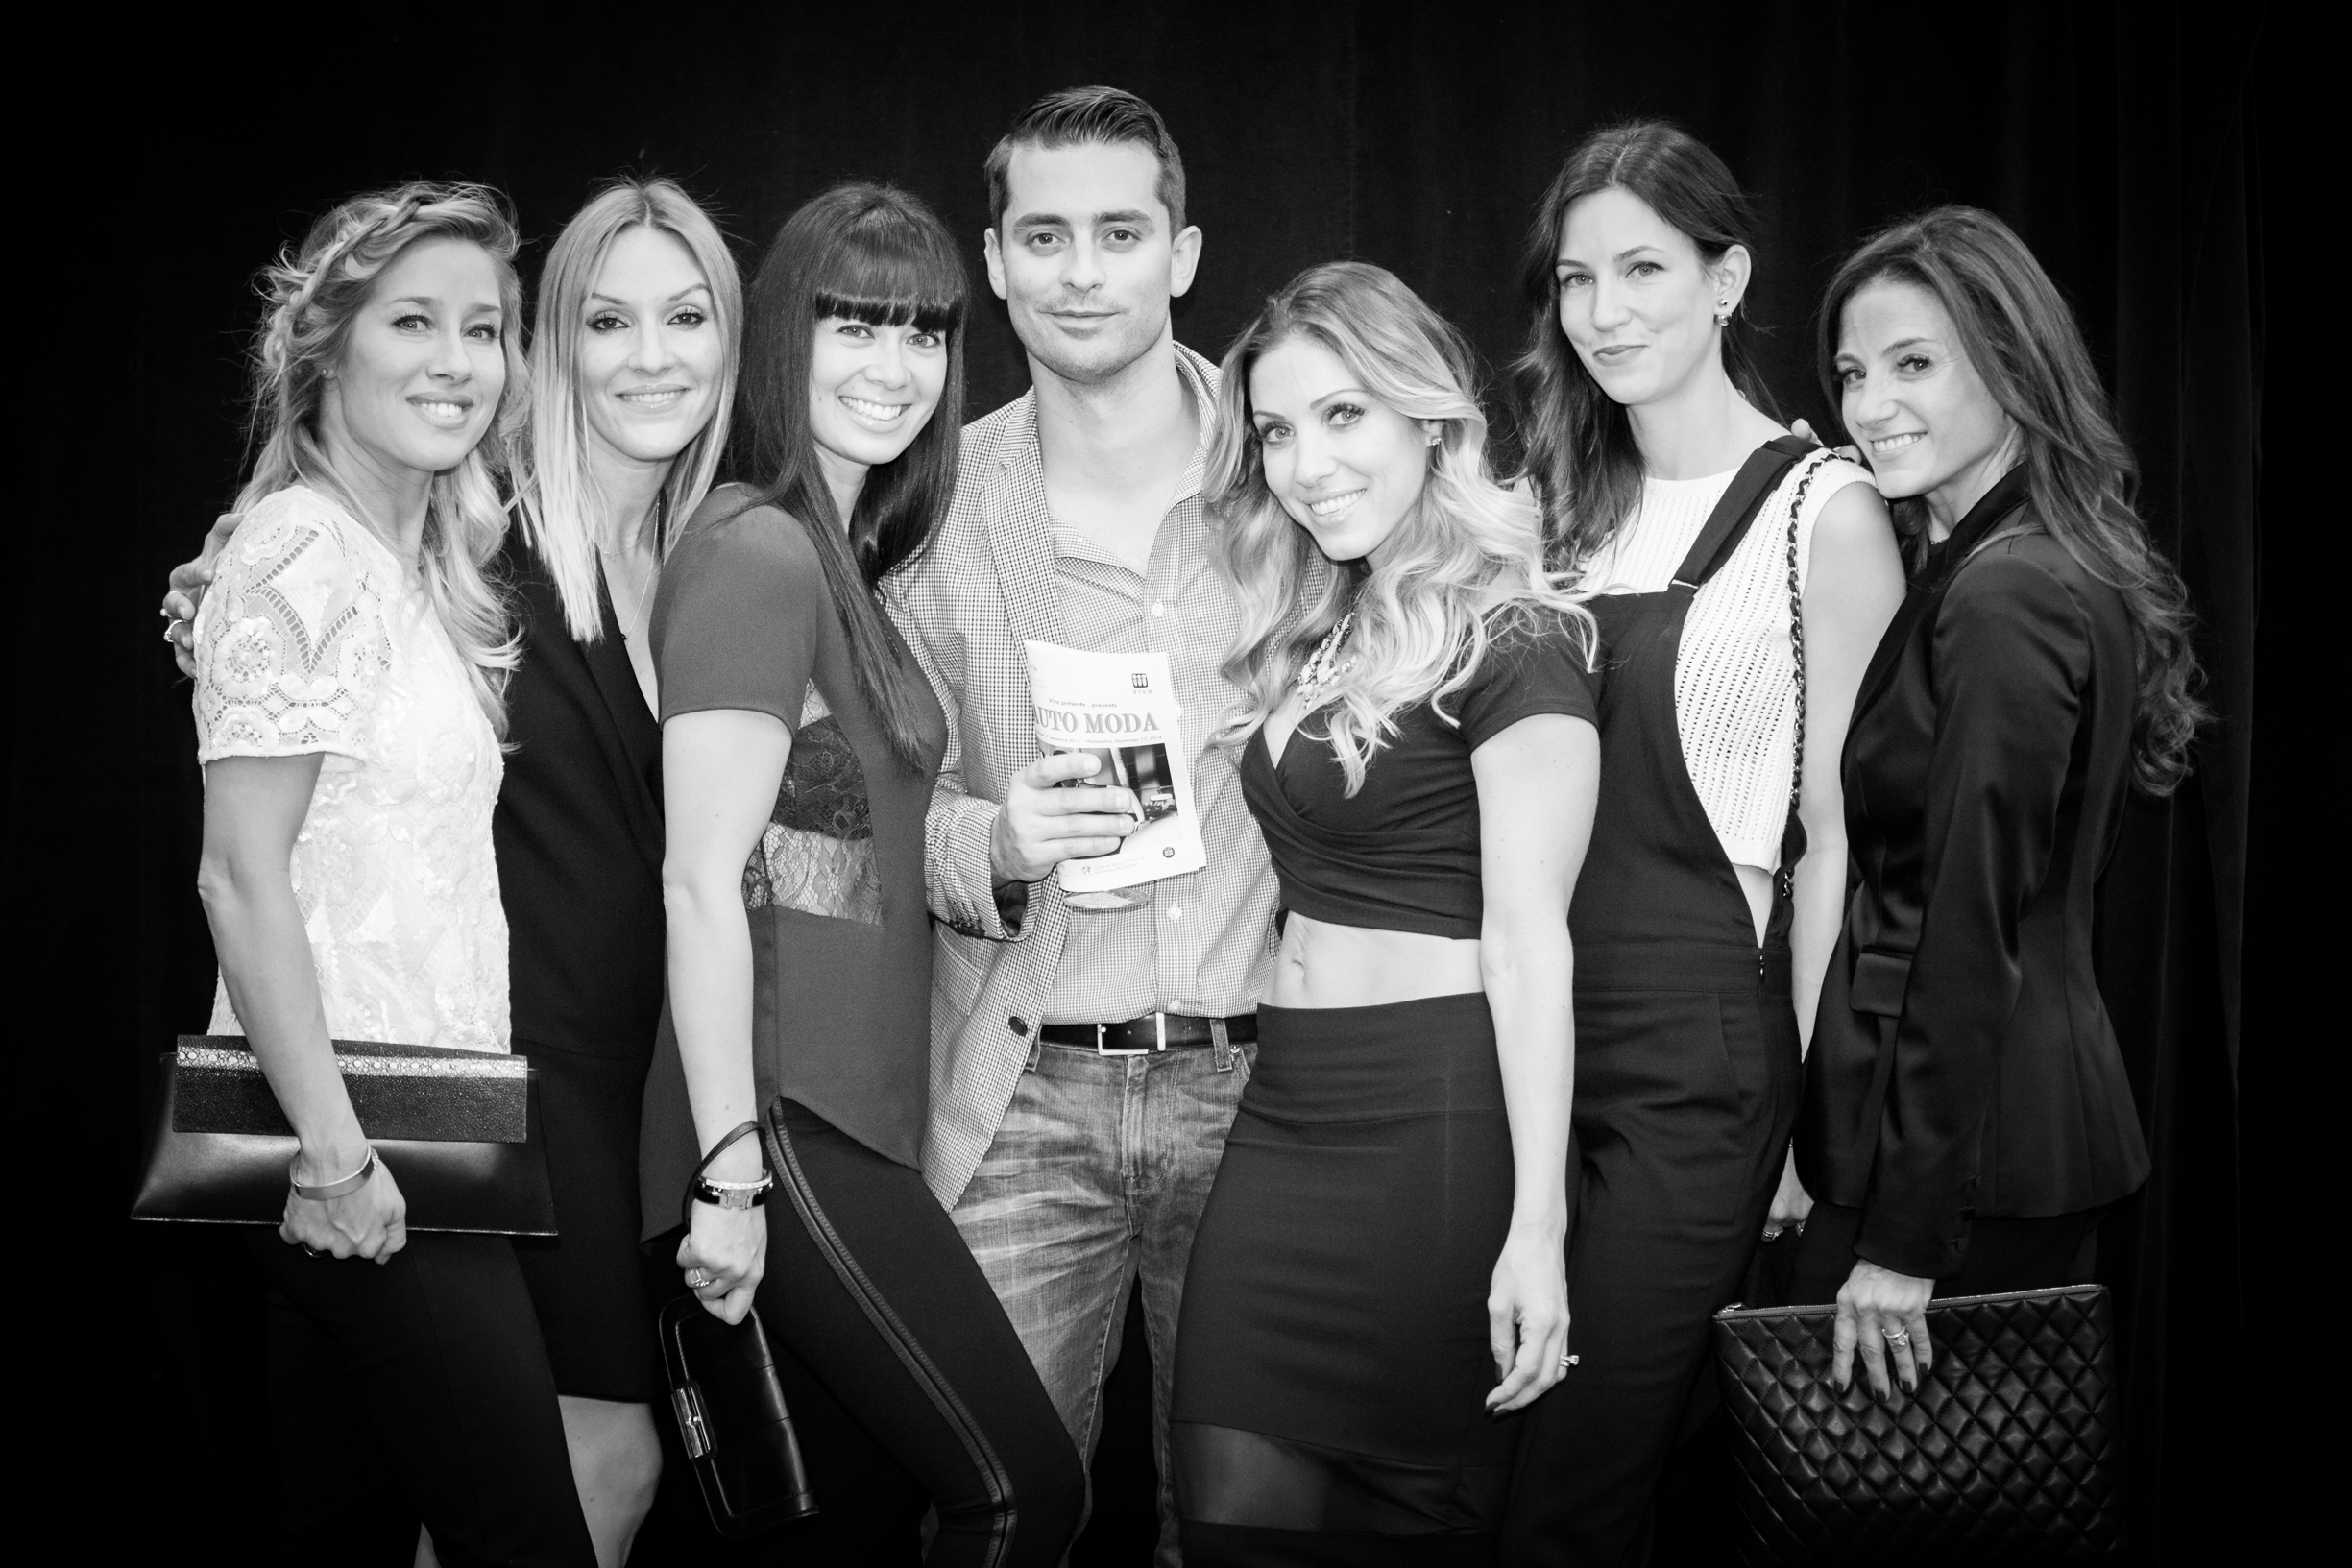 My crew with Phil Leithead, owner at Tux Productions and sponsor of the event.